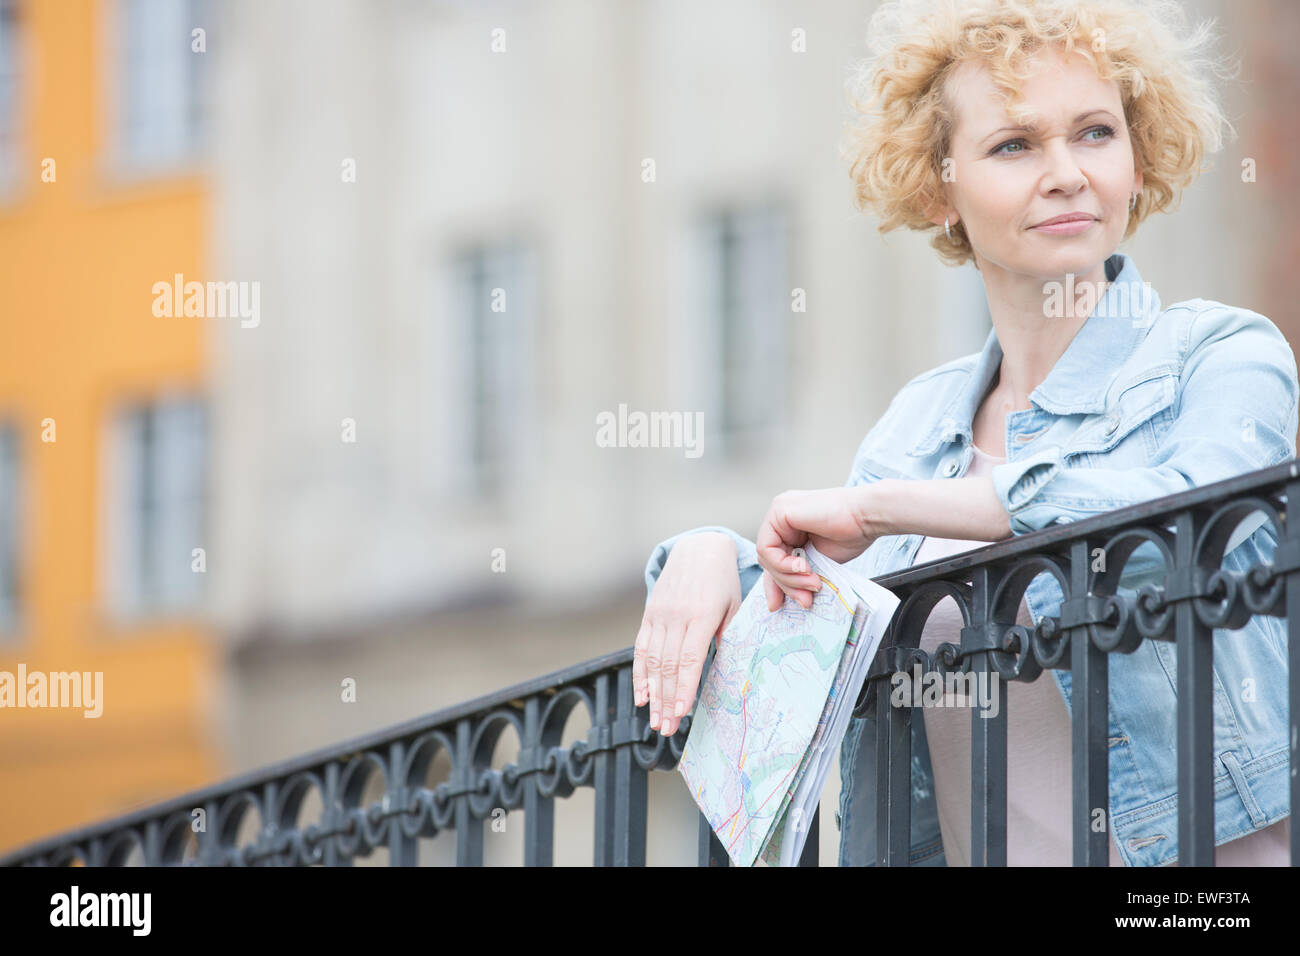 Thoughtful woman holding map tout en leaning on railing Photo Stock